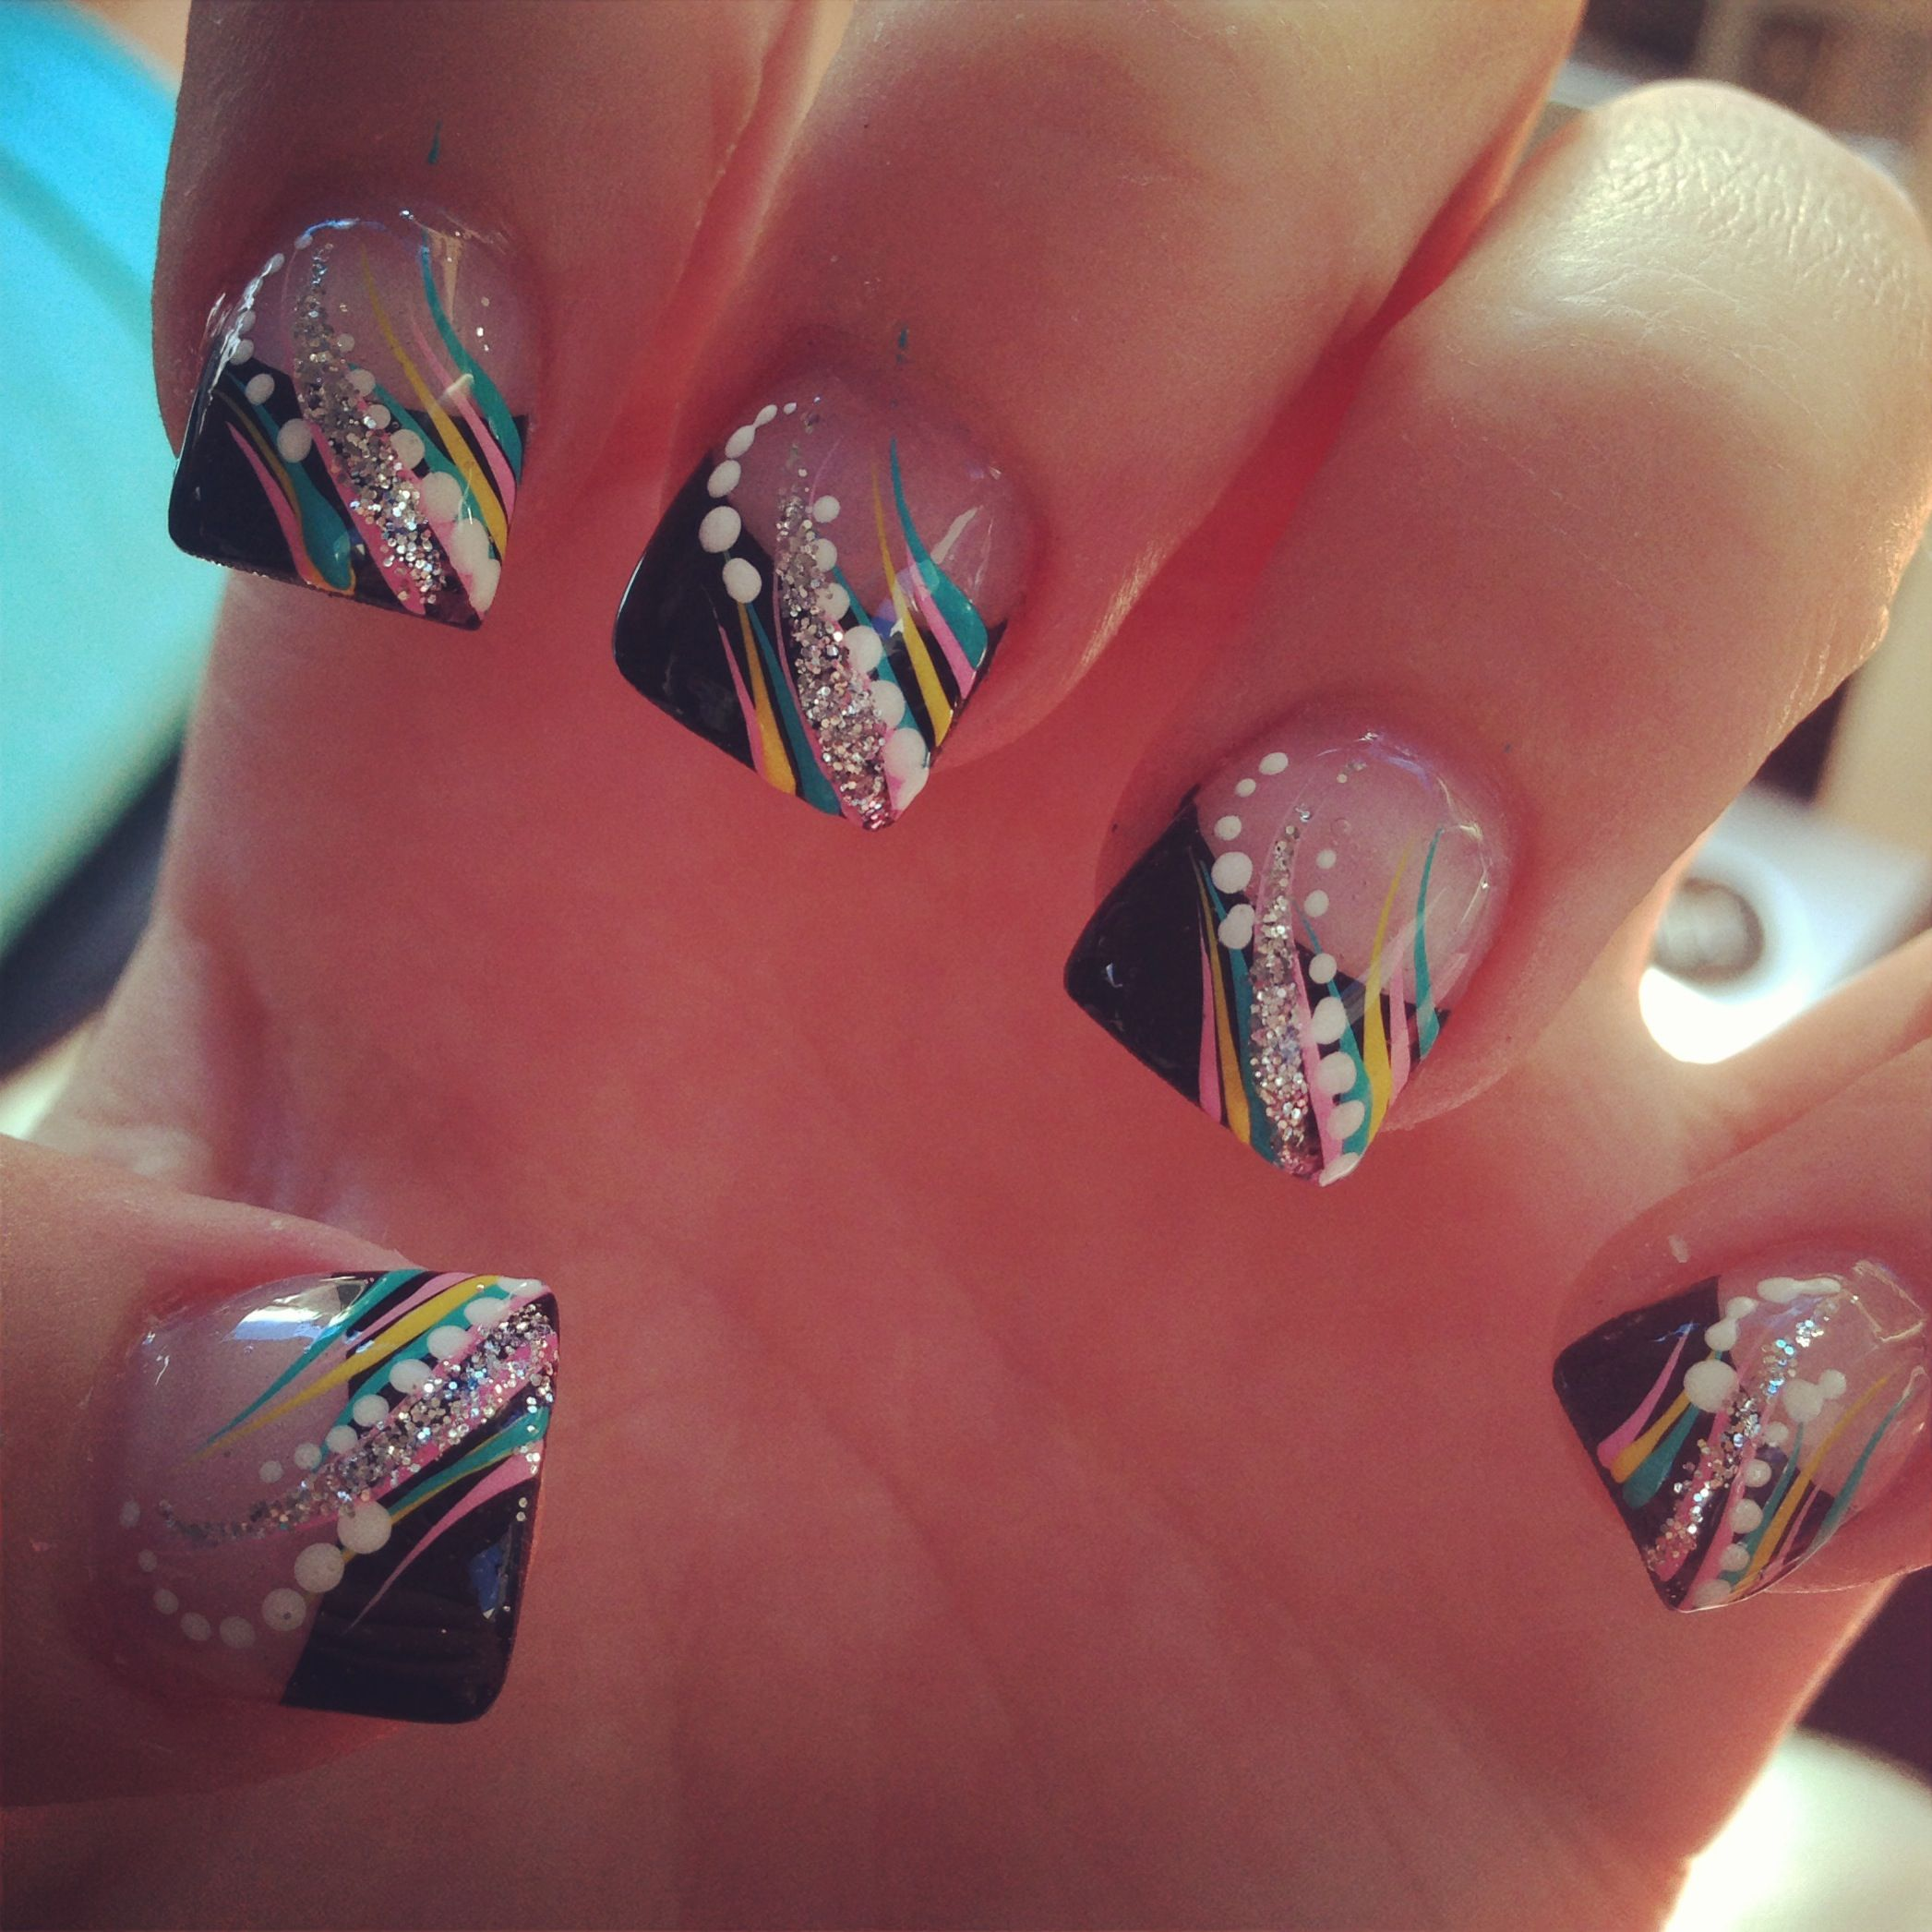 My New Nails:) Nails Acrylic Colorful Black Tip Glitter